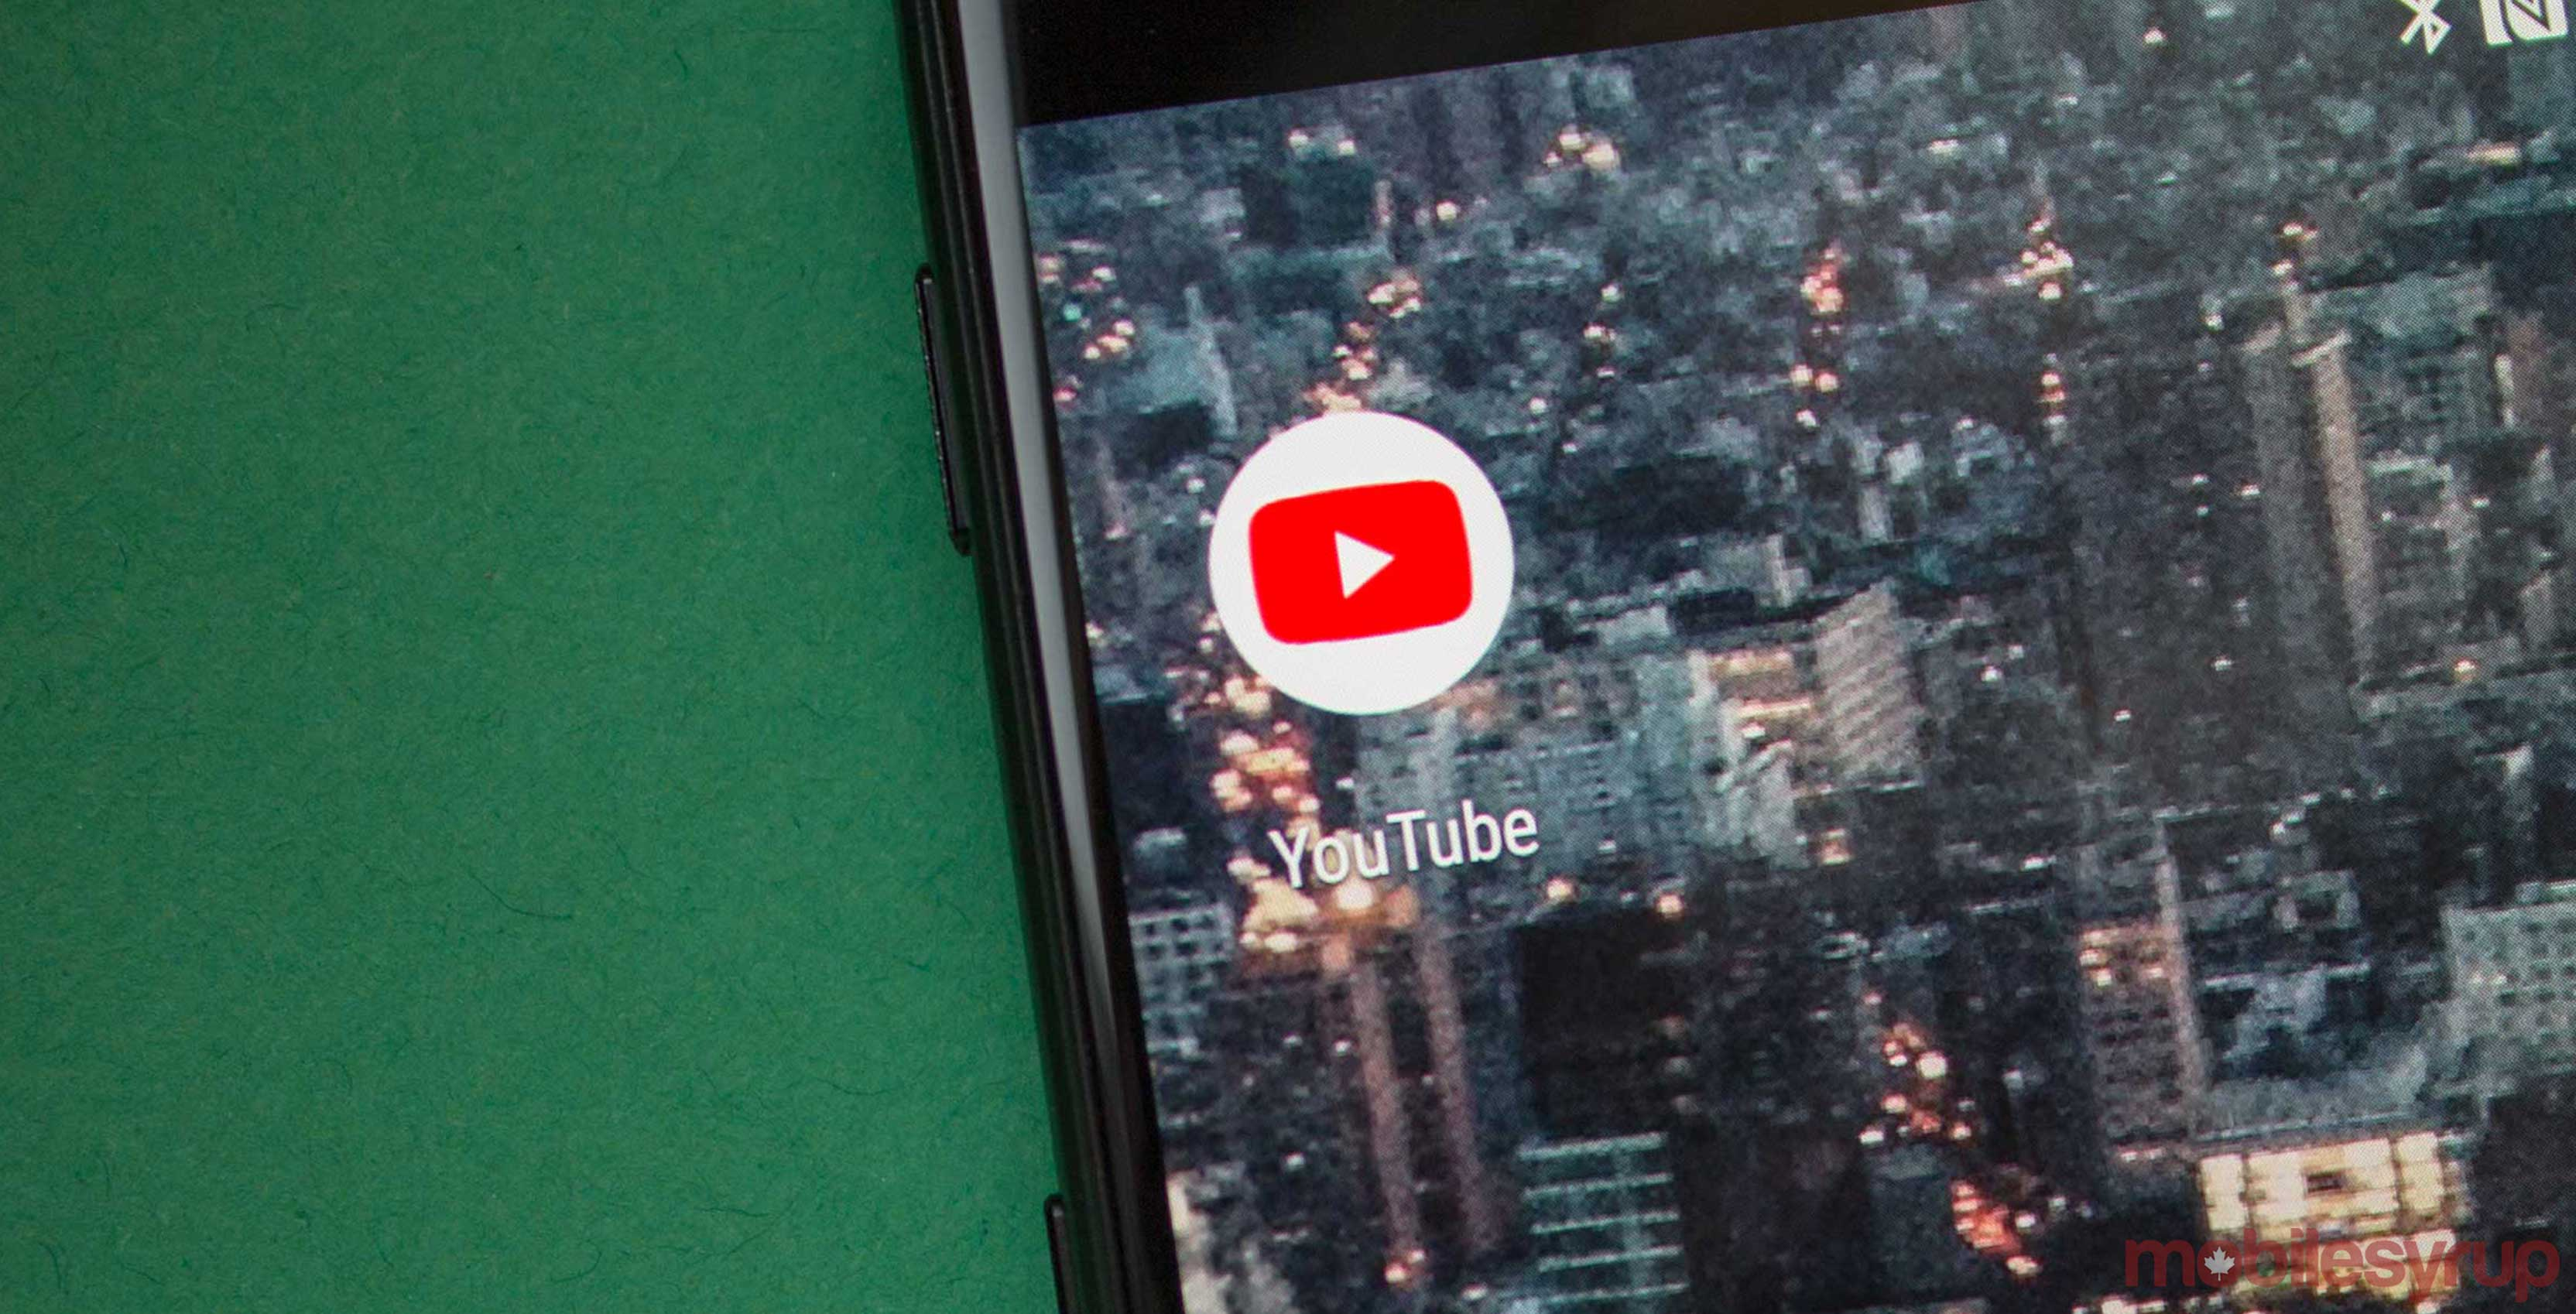 YouTube app on Android